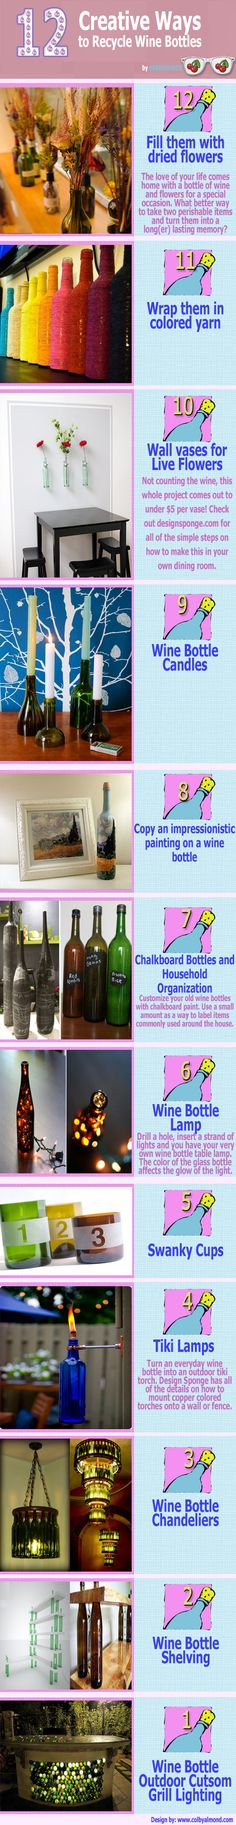 recycle wine bottles to beauty!